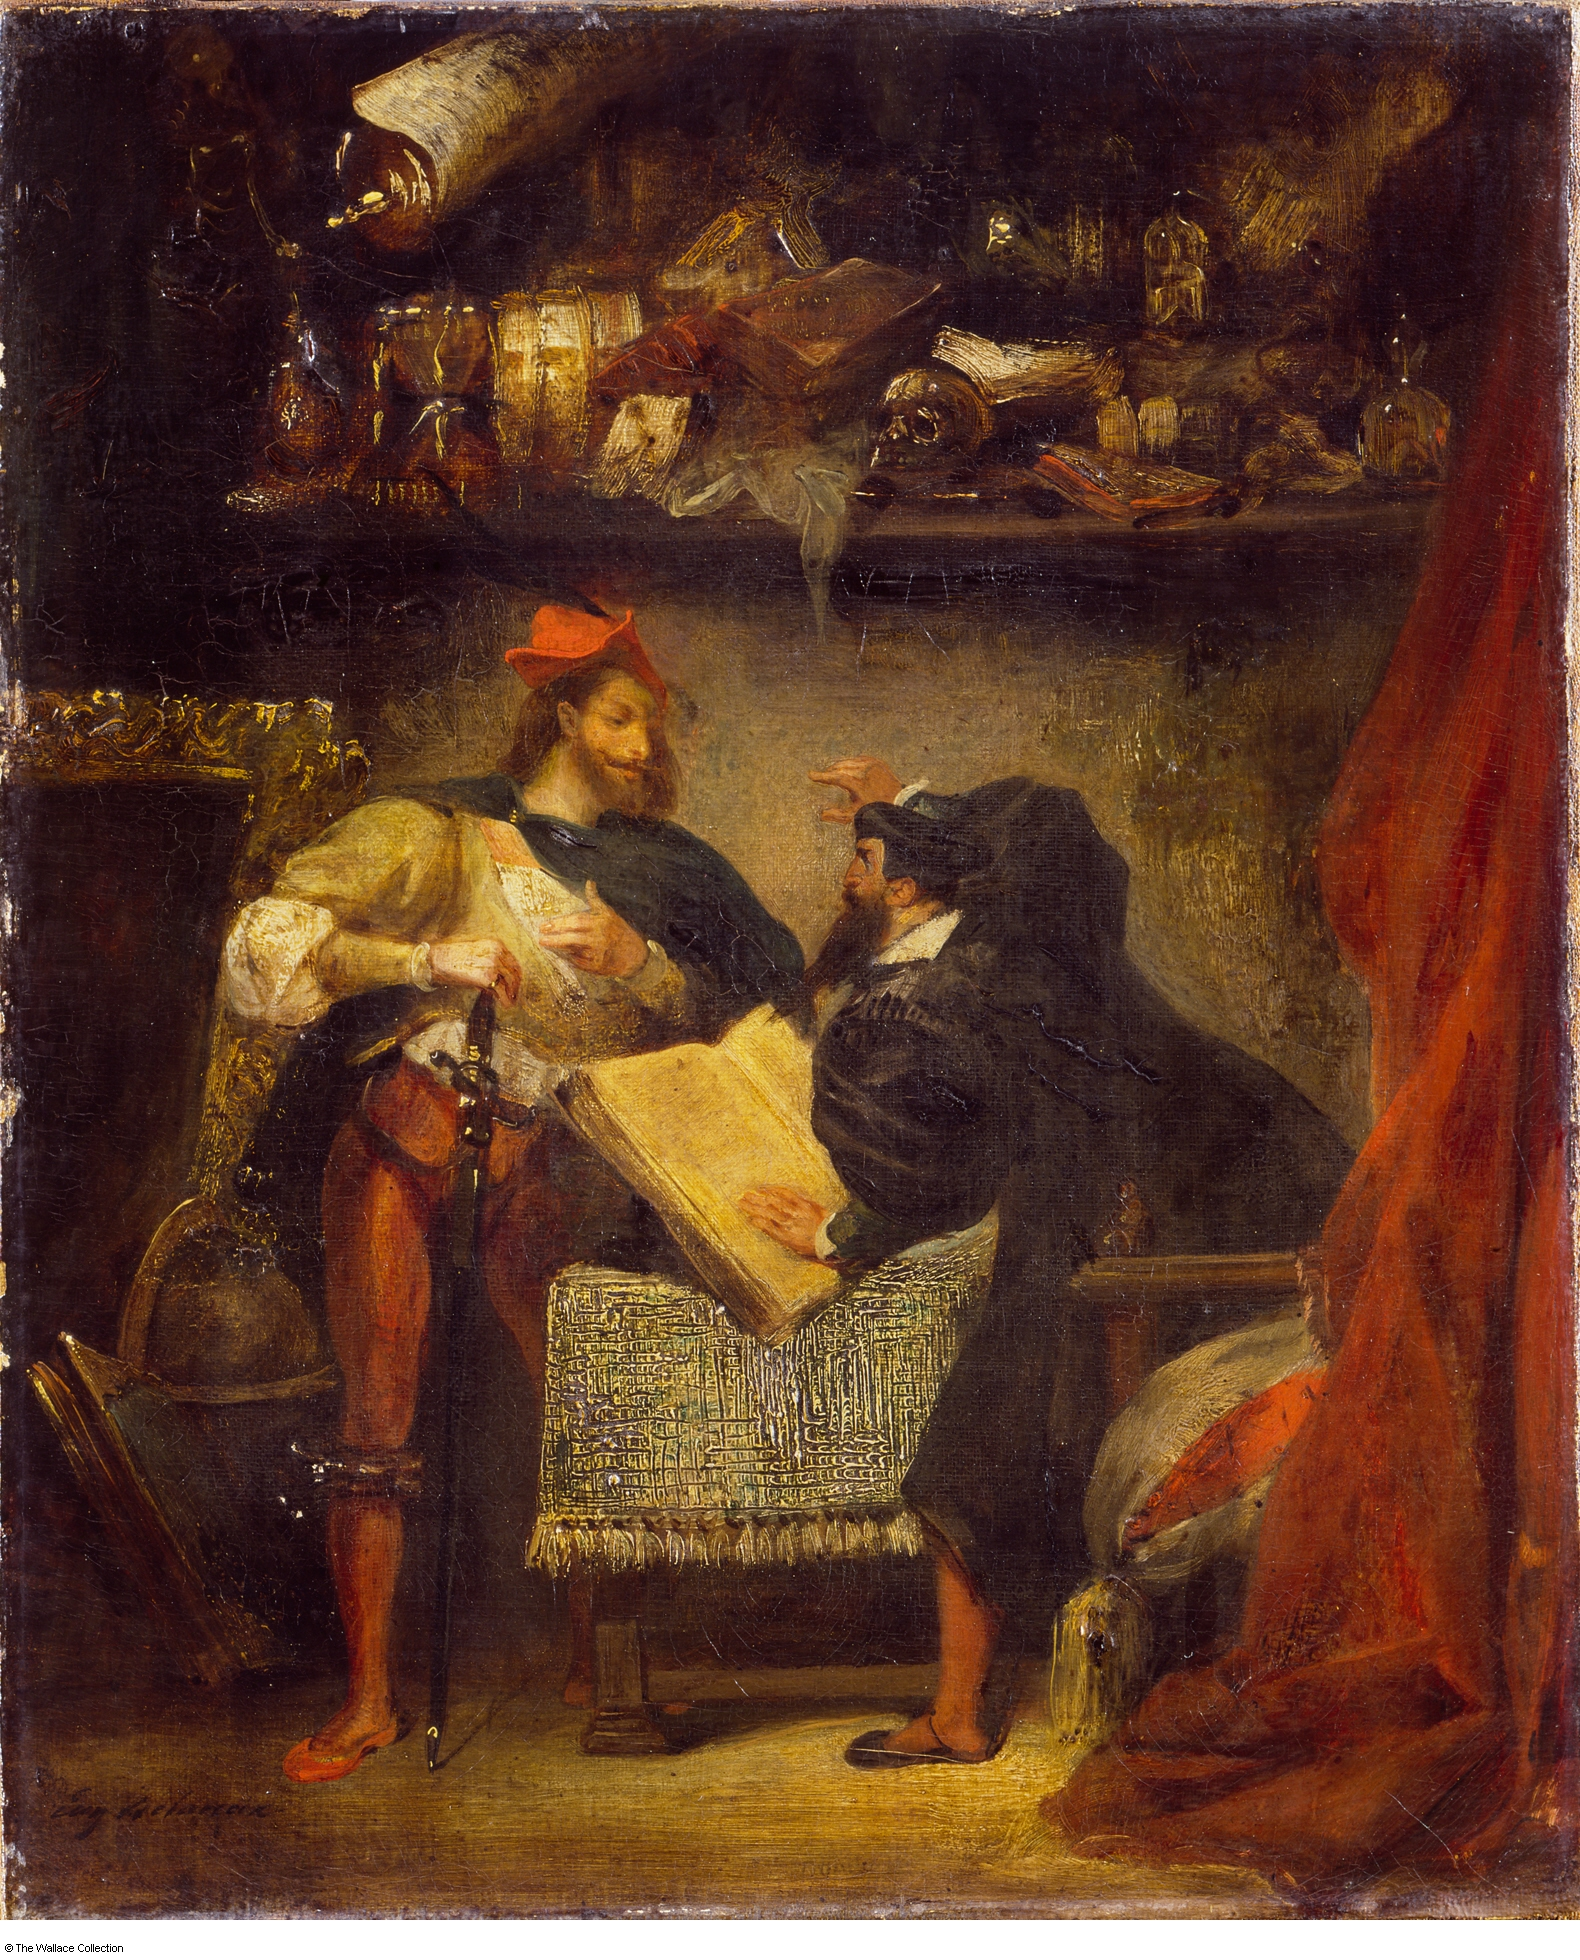 Delacroix_-_Faust_and_Mephistopheles%2C_1827-8.jpg